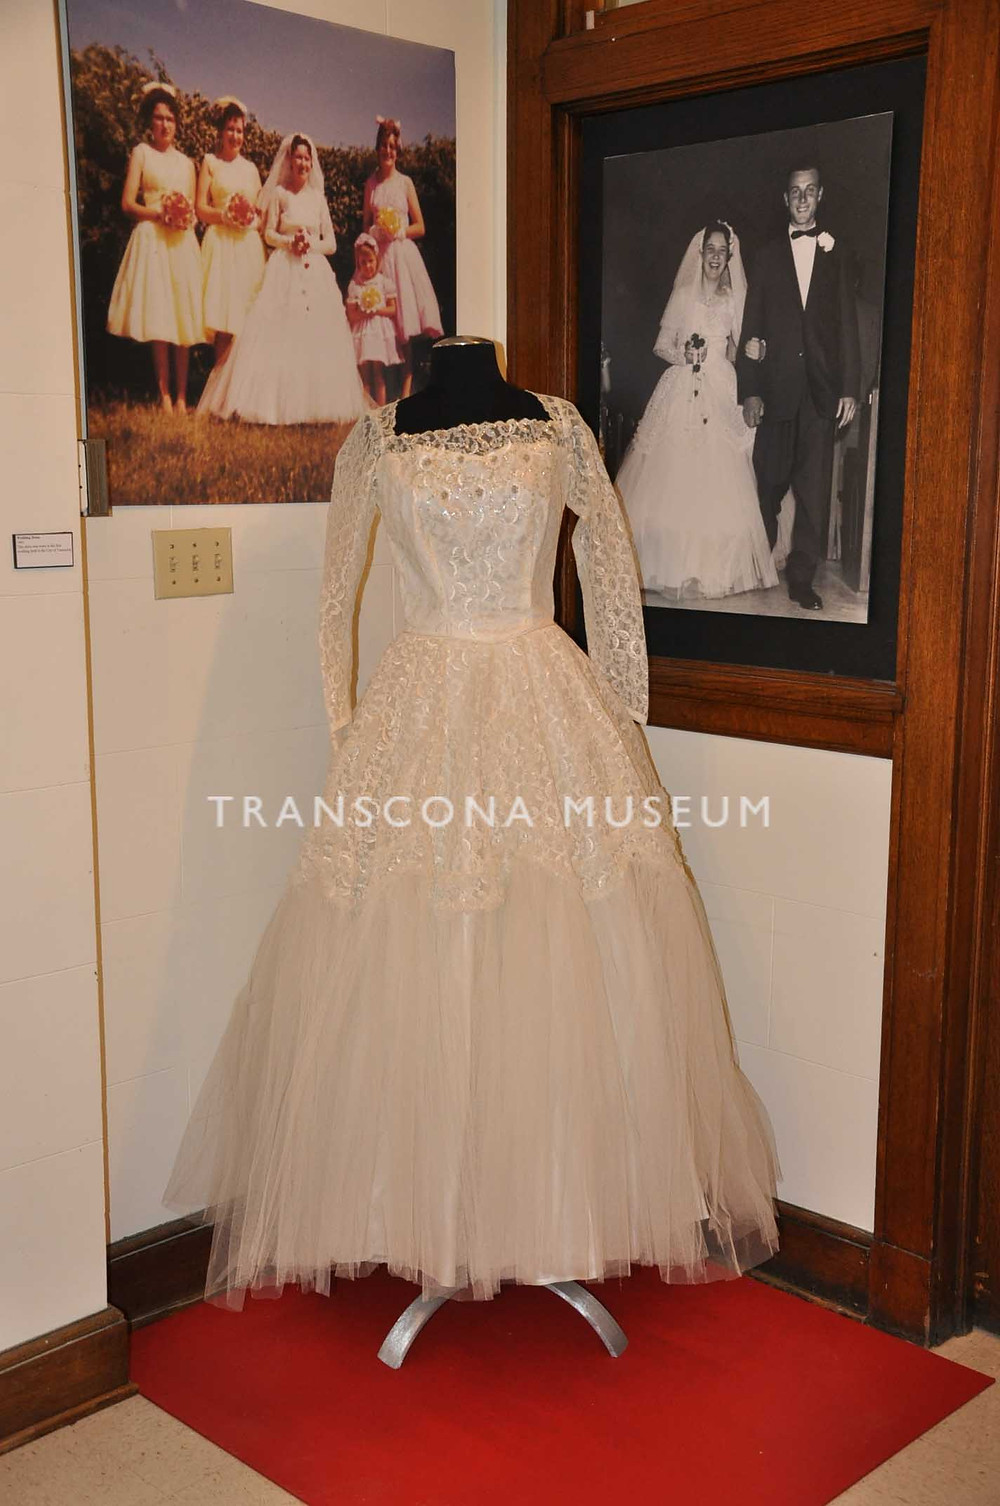 Wedding Dress on display at Transcona Museum